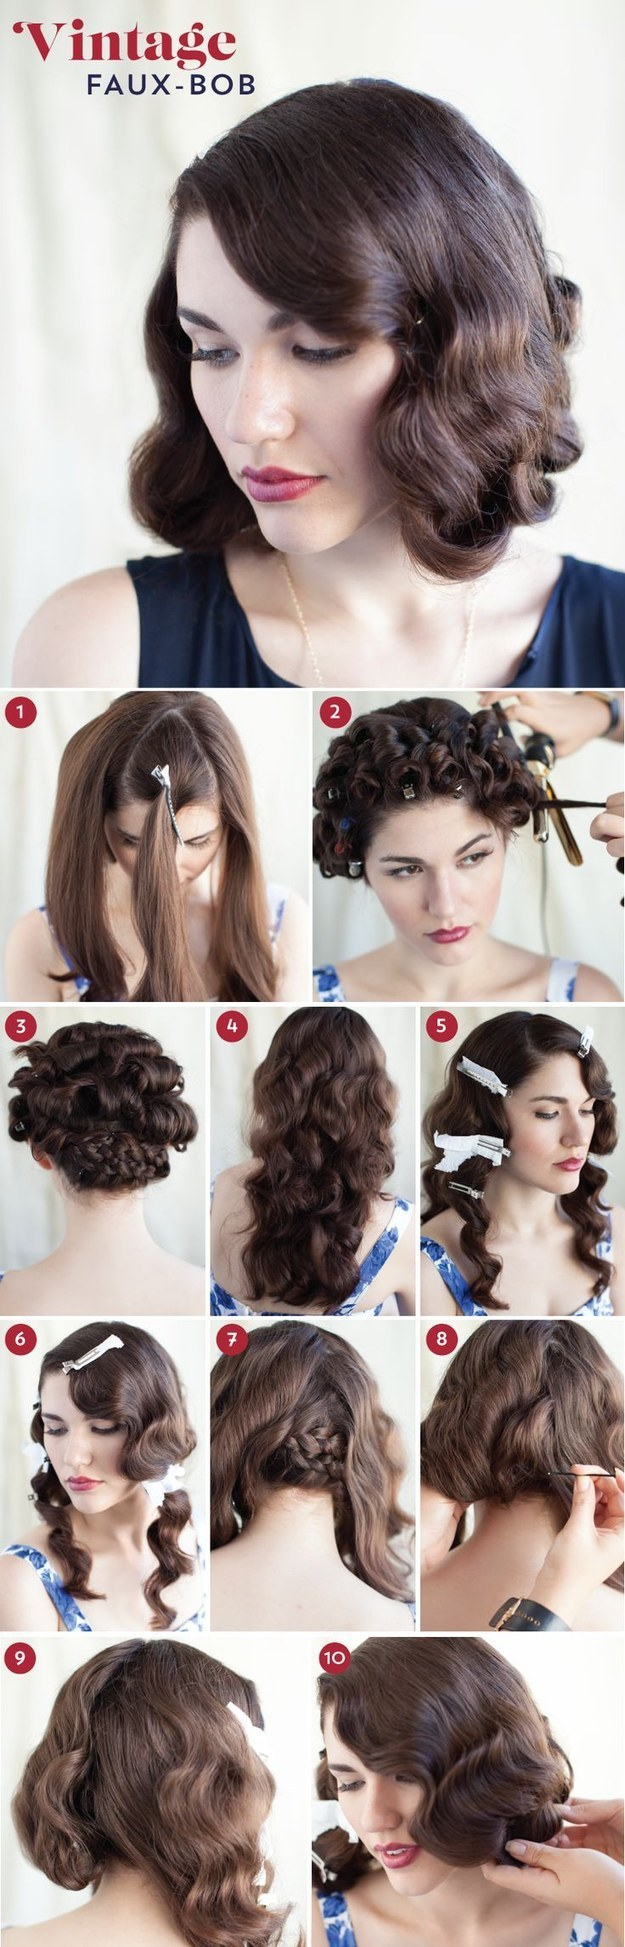 32 vintage hairstyle tutorials you should not miss | styles